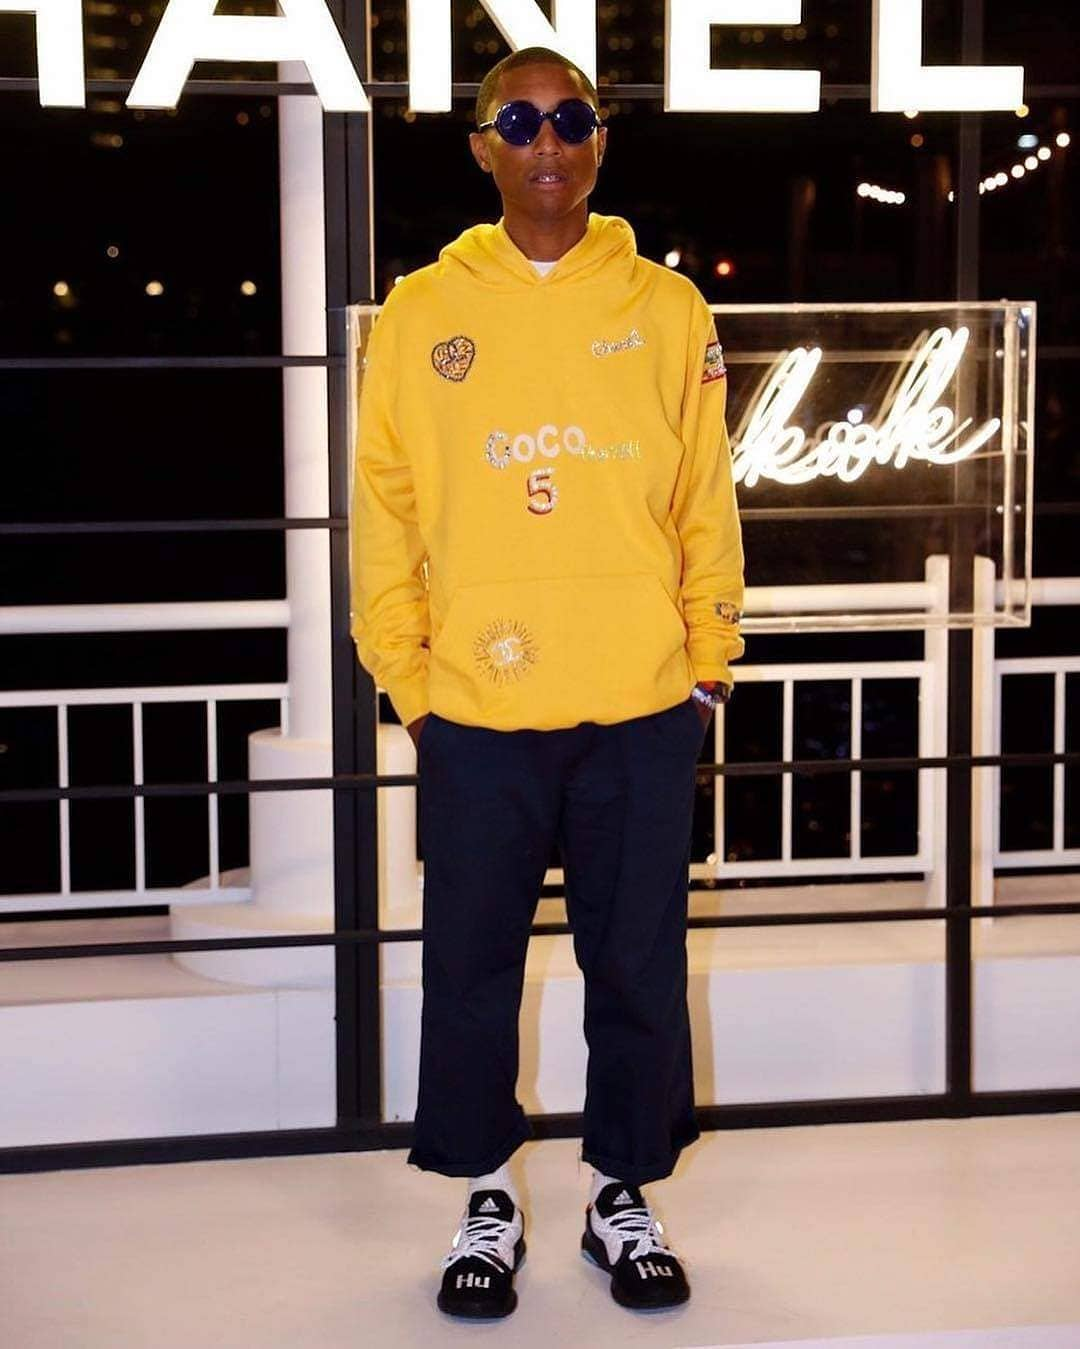 ic: Pharrell Williams during wearing Chanel Pharrell yellow hoodie, sunglasses, striped Adidias trainers and and dark cropped trousers. Source: Instagram